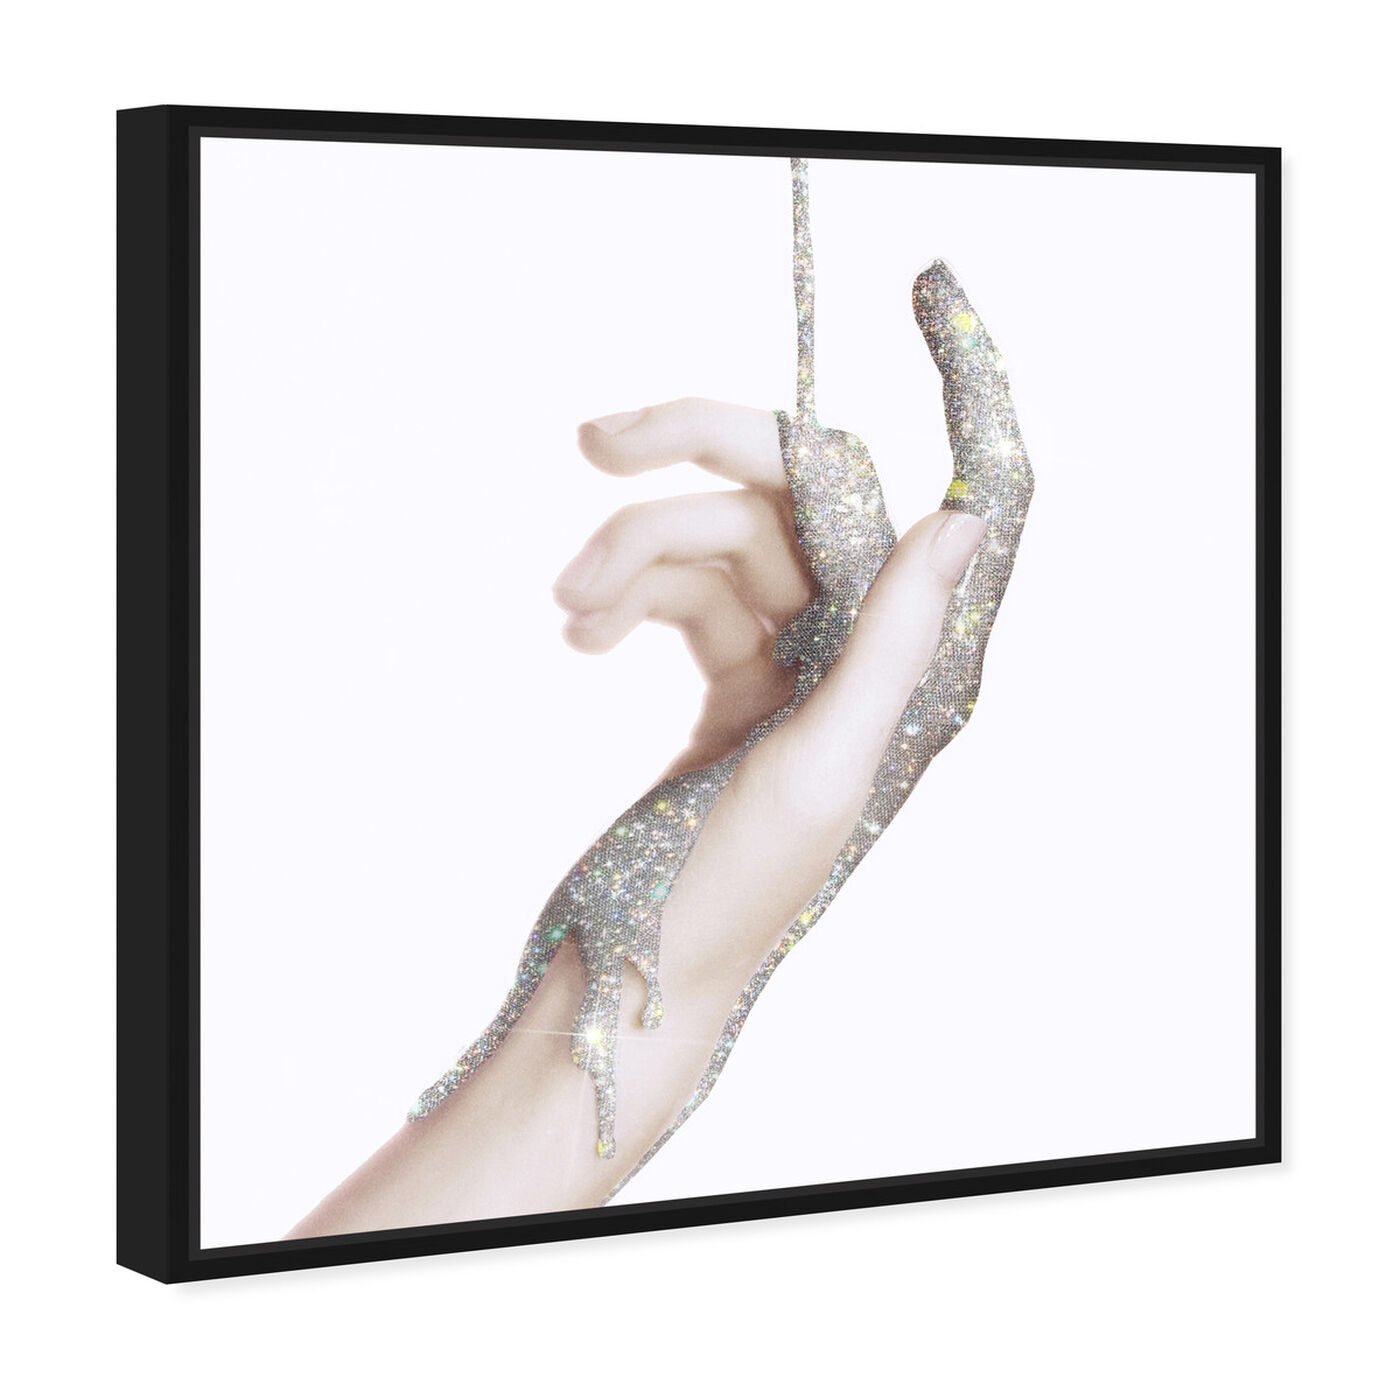 Angled view of Hands and Rhinestones III featuring fashion and glam and jewelry art.